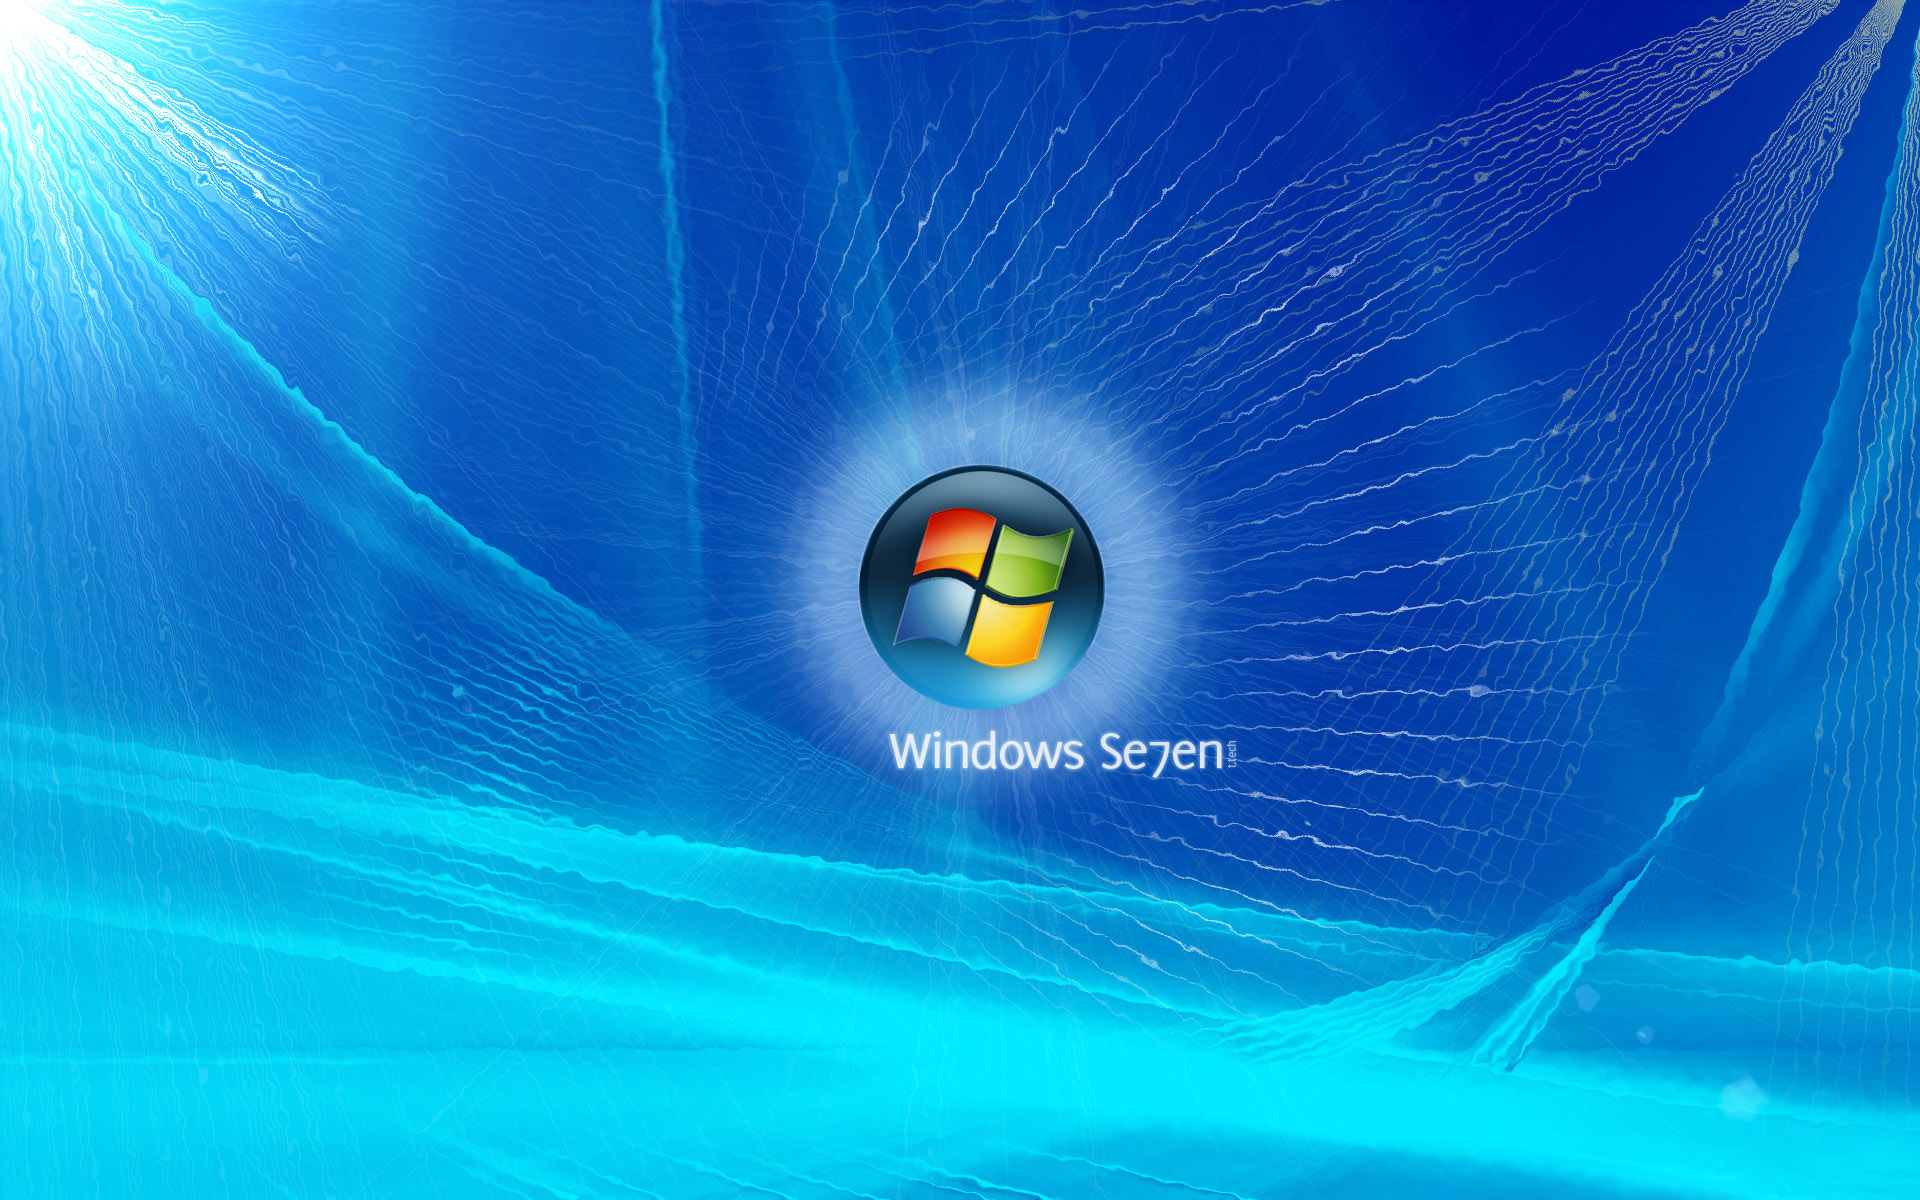 laptop wallpapers hd for windows 7,operating system,blue,water,technology,electric blue